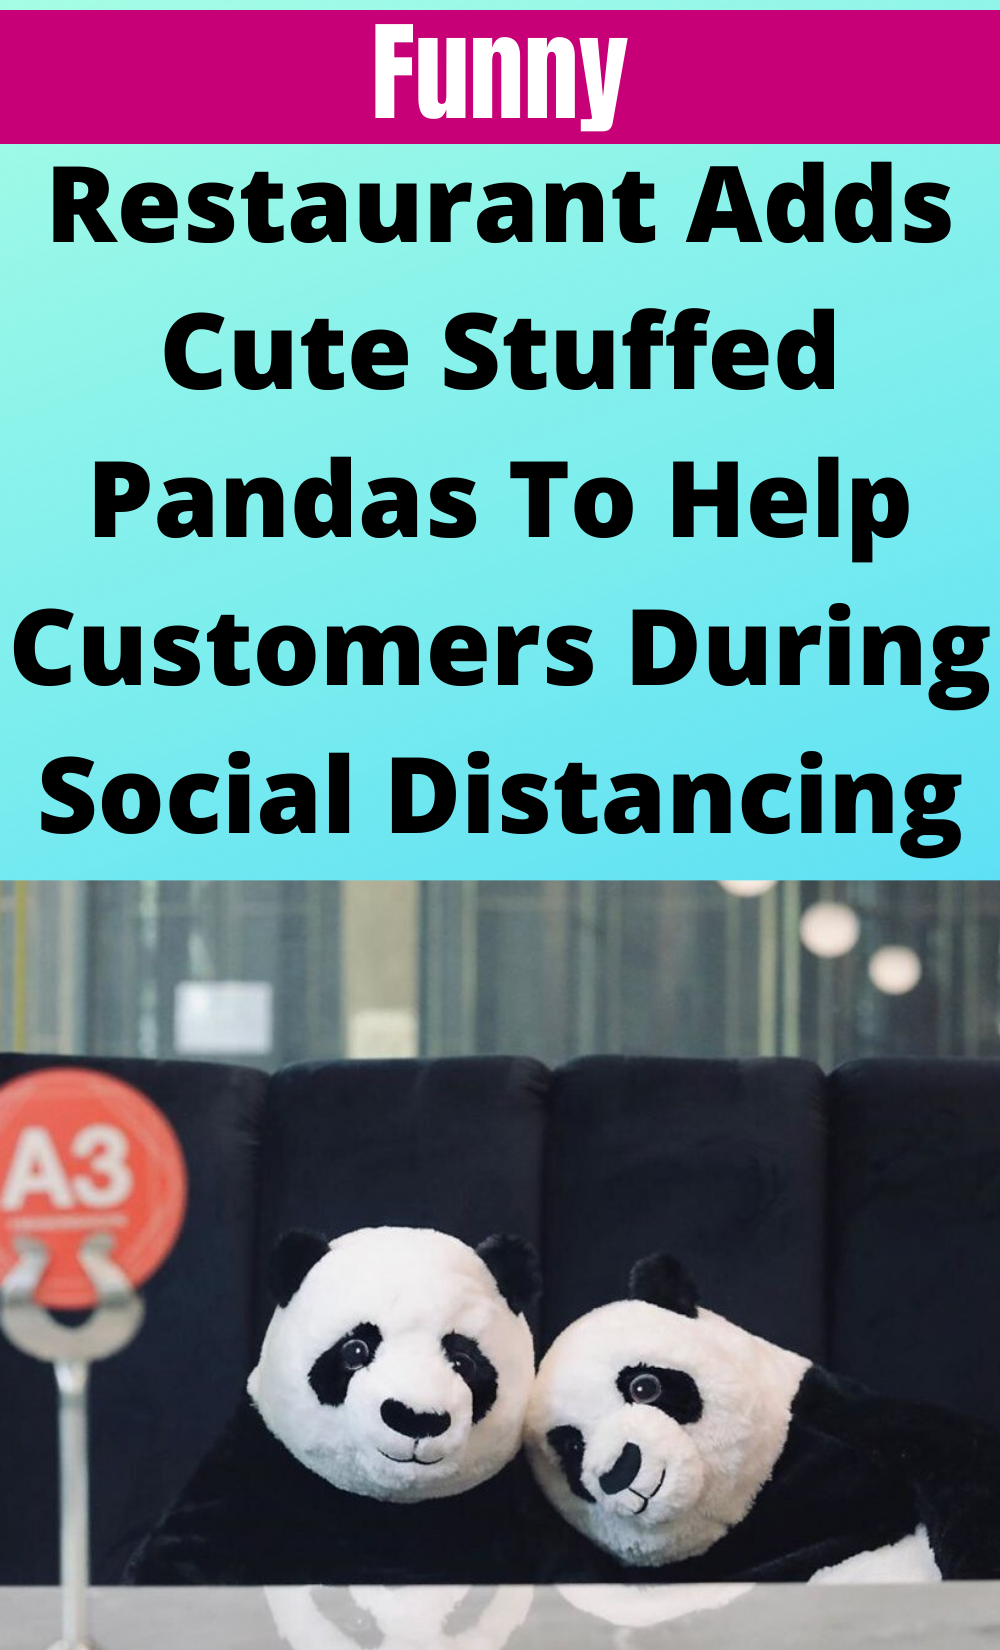 Restaurant Adds Cute Stuffed Pandas To Help Customers During Social Distancing In 2020 Funny Cute Fun